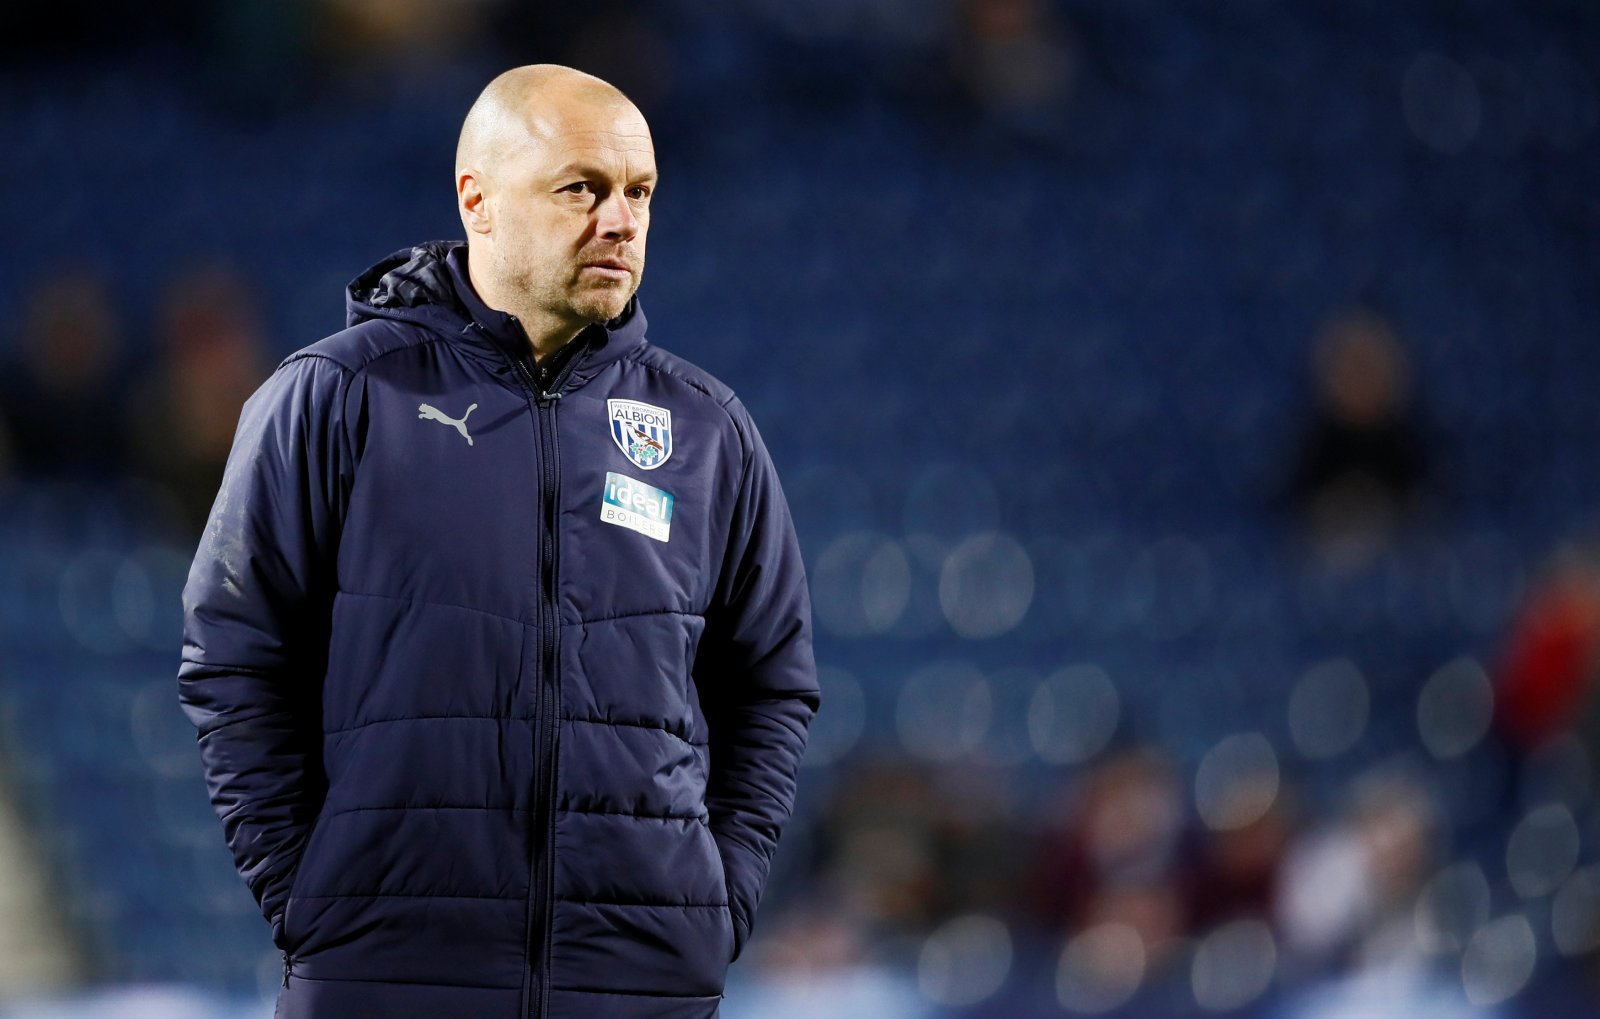 West Brom: There's just no way this can last